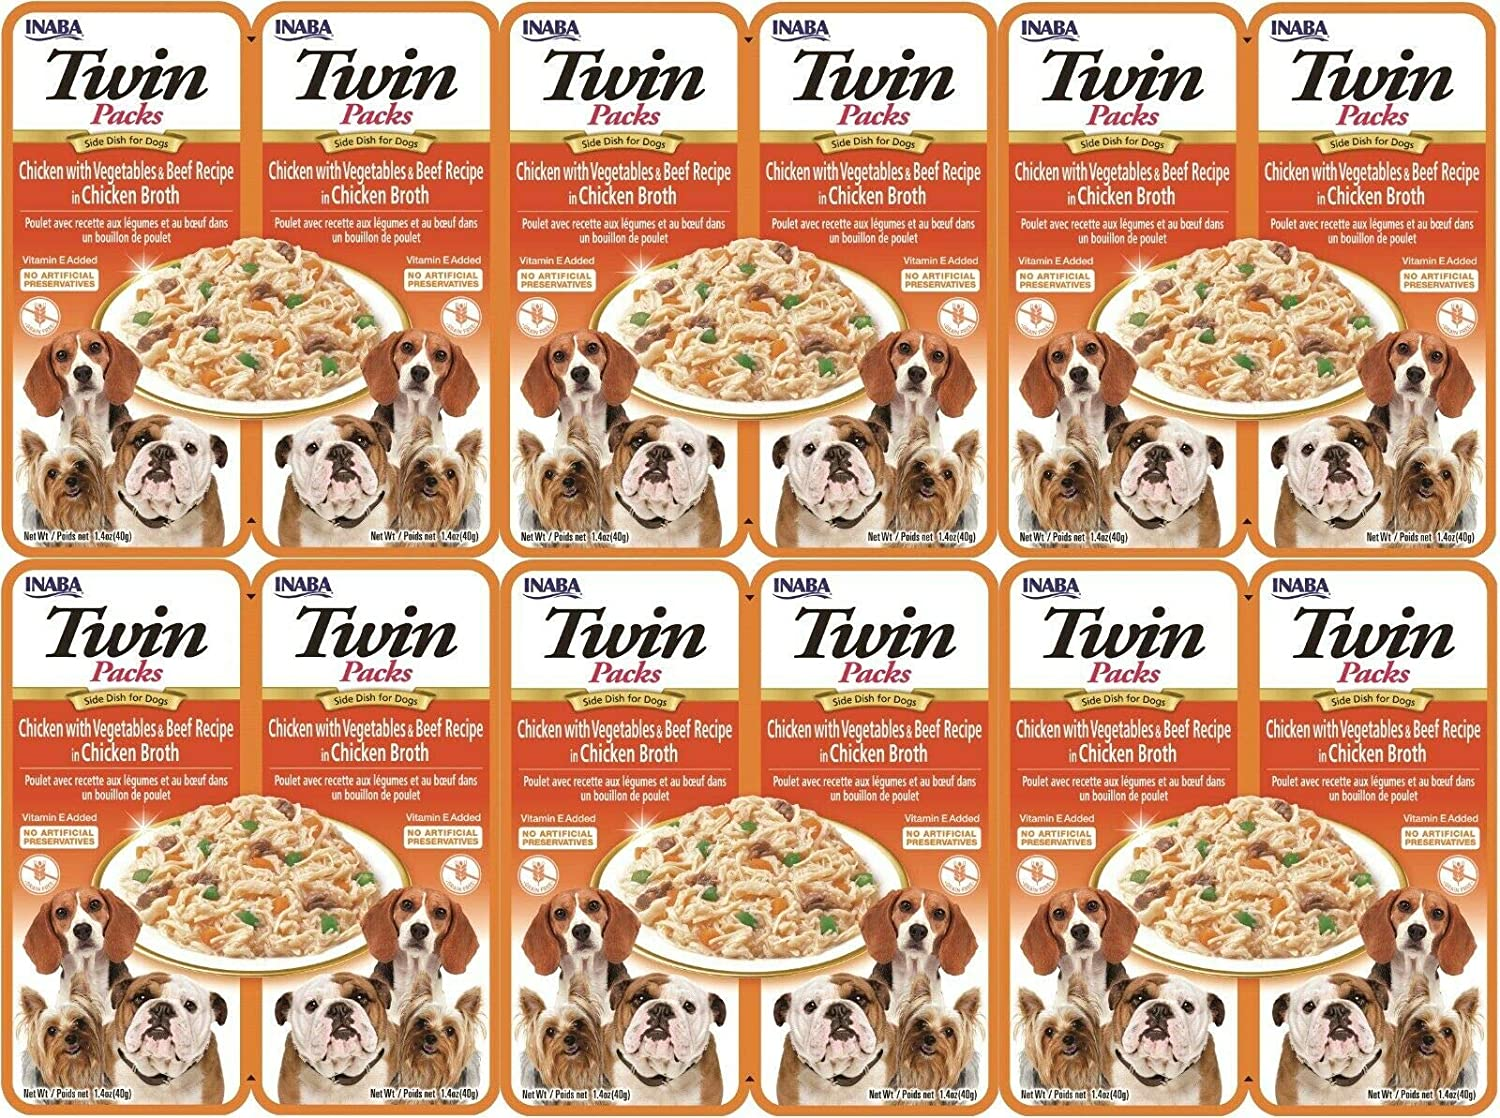 INABA Twin Packs - Side Dish Treat for Dogs - Chicken with Vegetables, Beef or Cheese in Chicken Broth